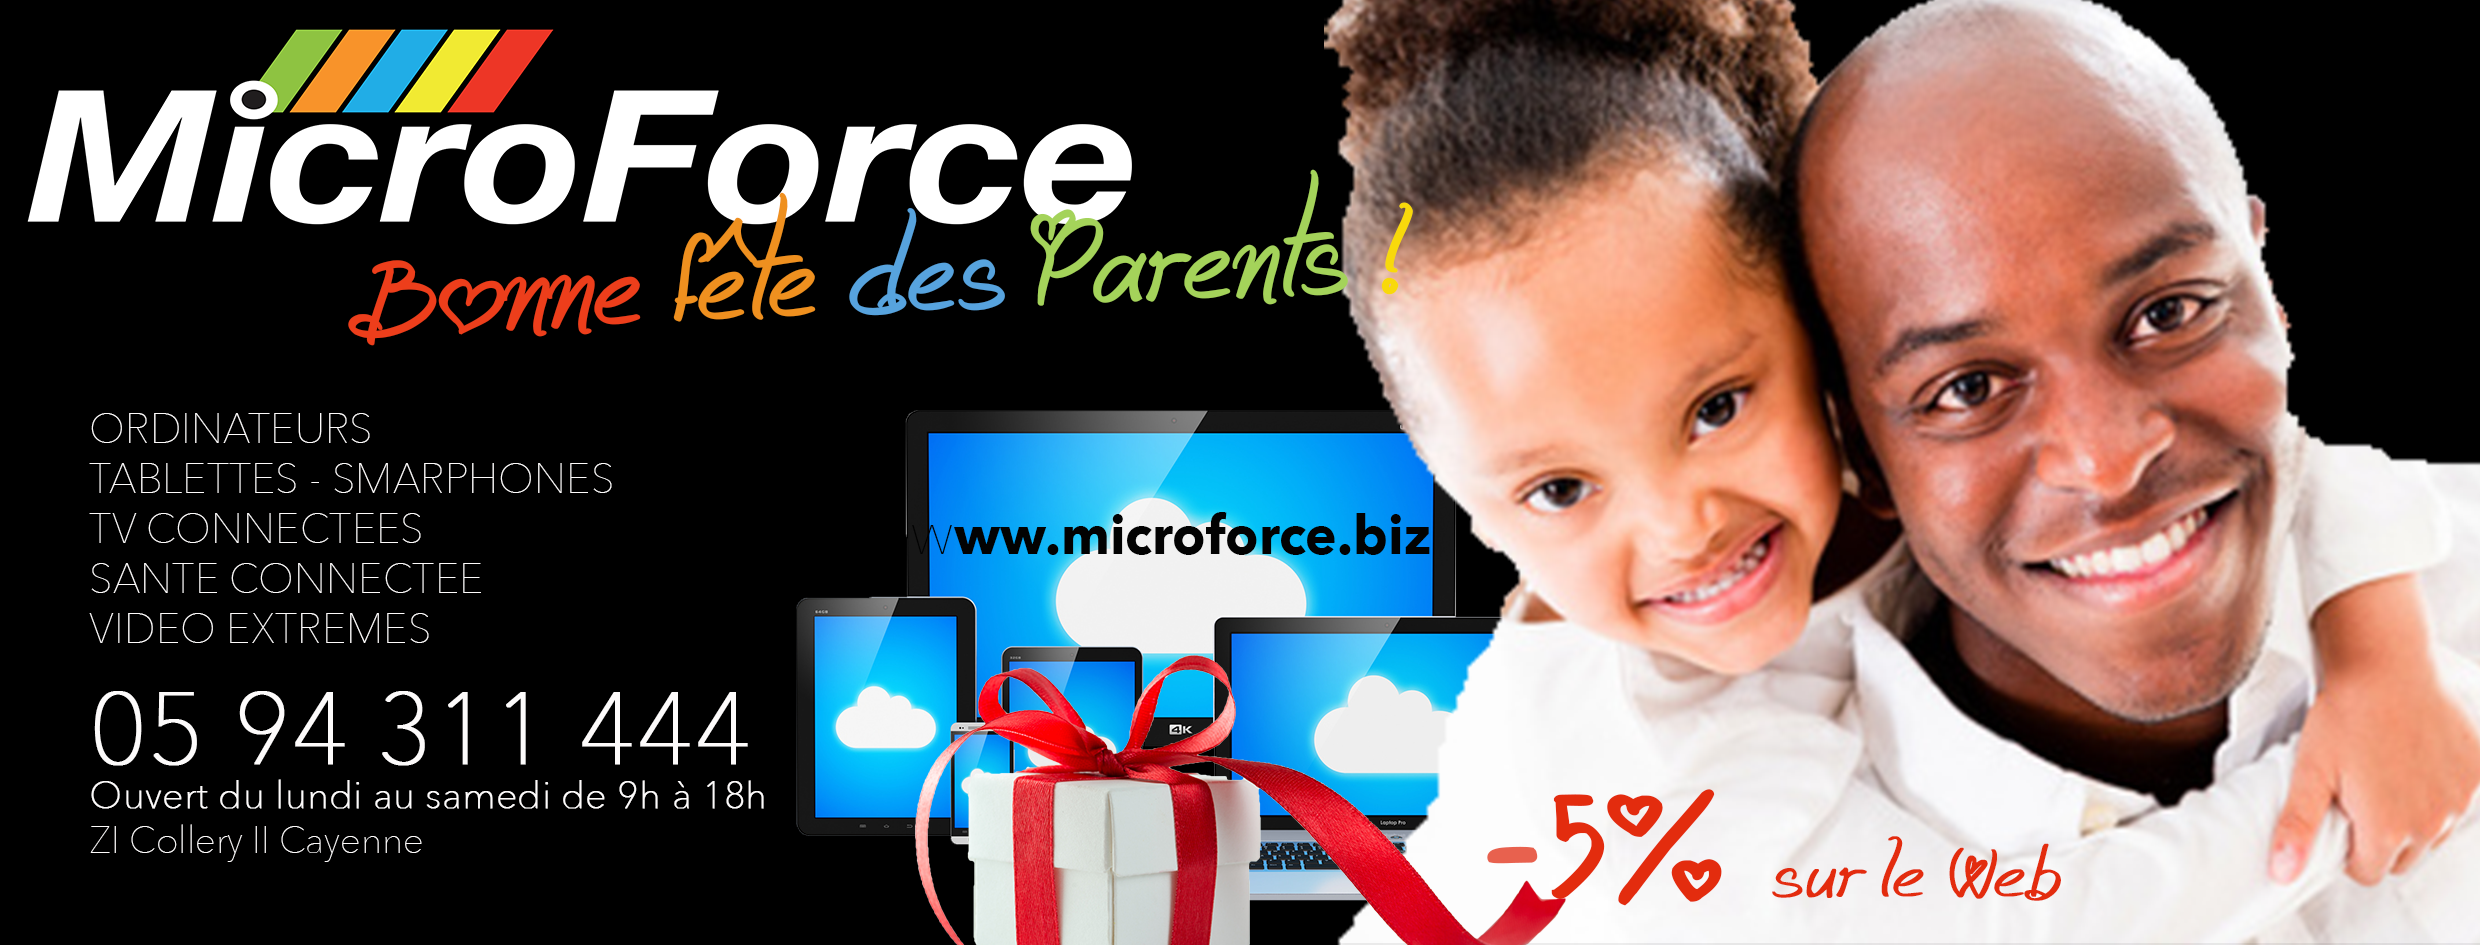 PUB_MICROFORCE_FDP_2016_N°2